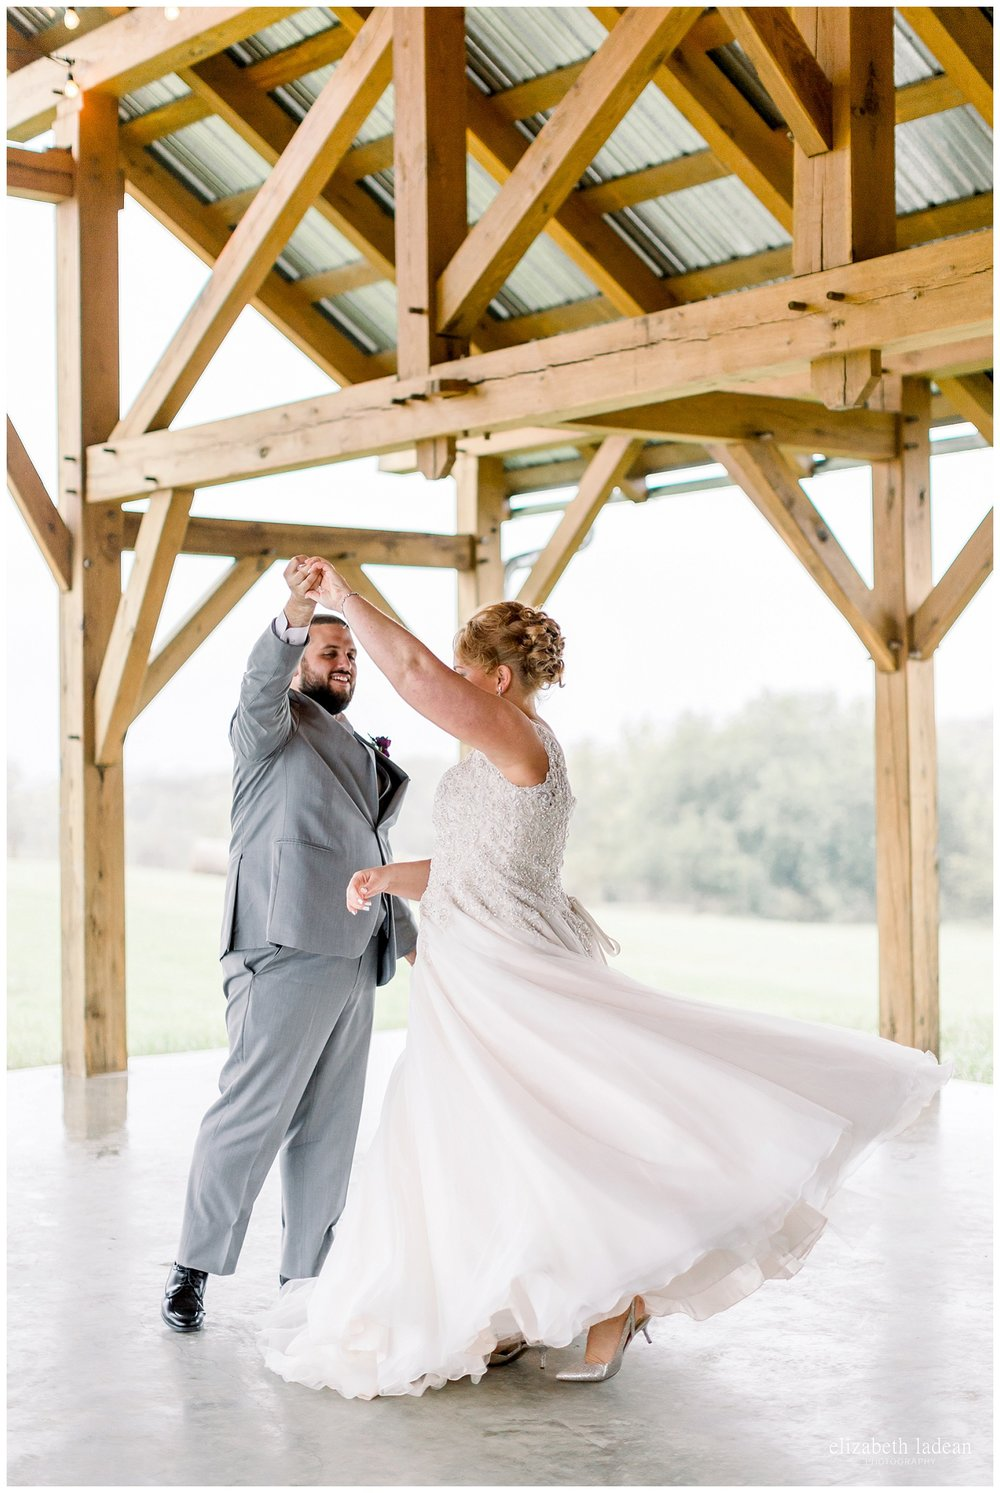 Weston-Timber-Barn-Wedding-Photography-L+A-elizabeth-ladean0photo_1863.jpg